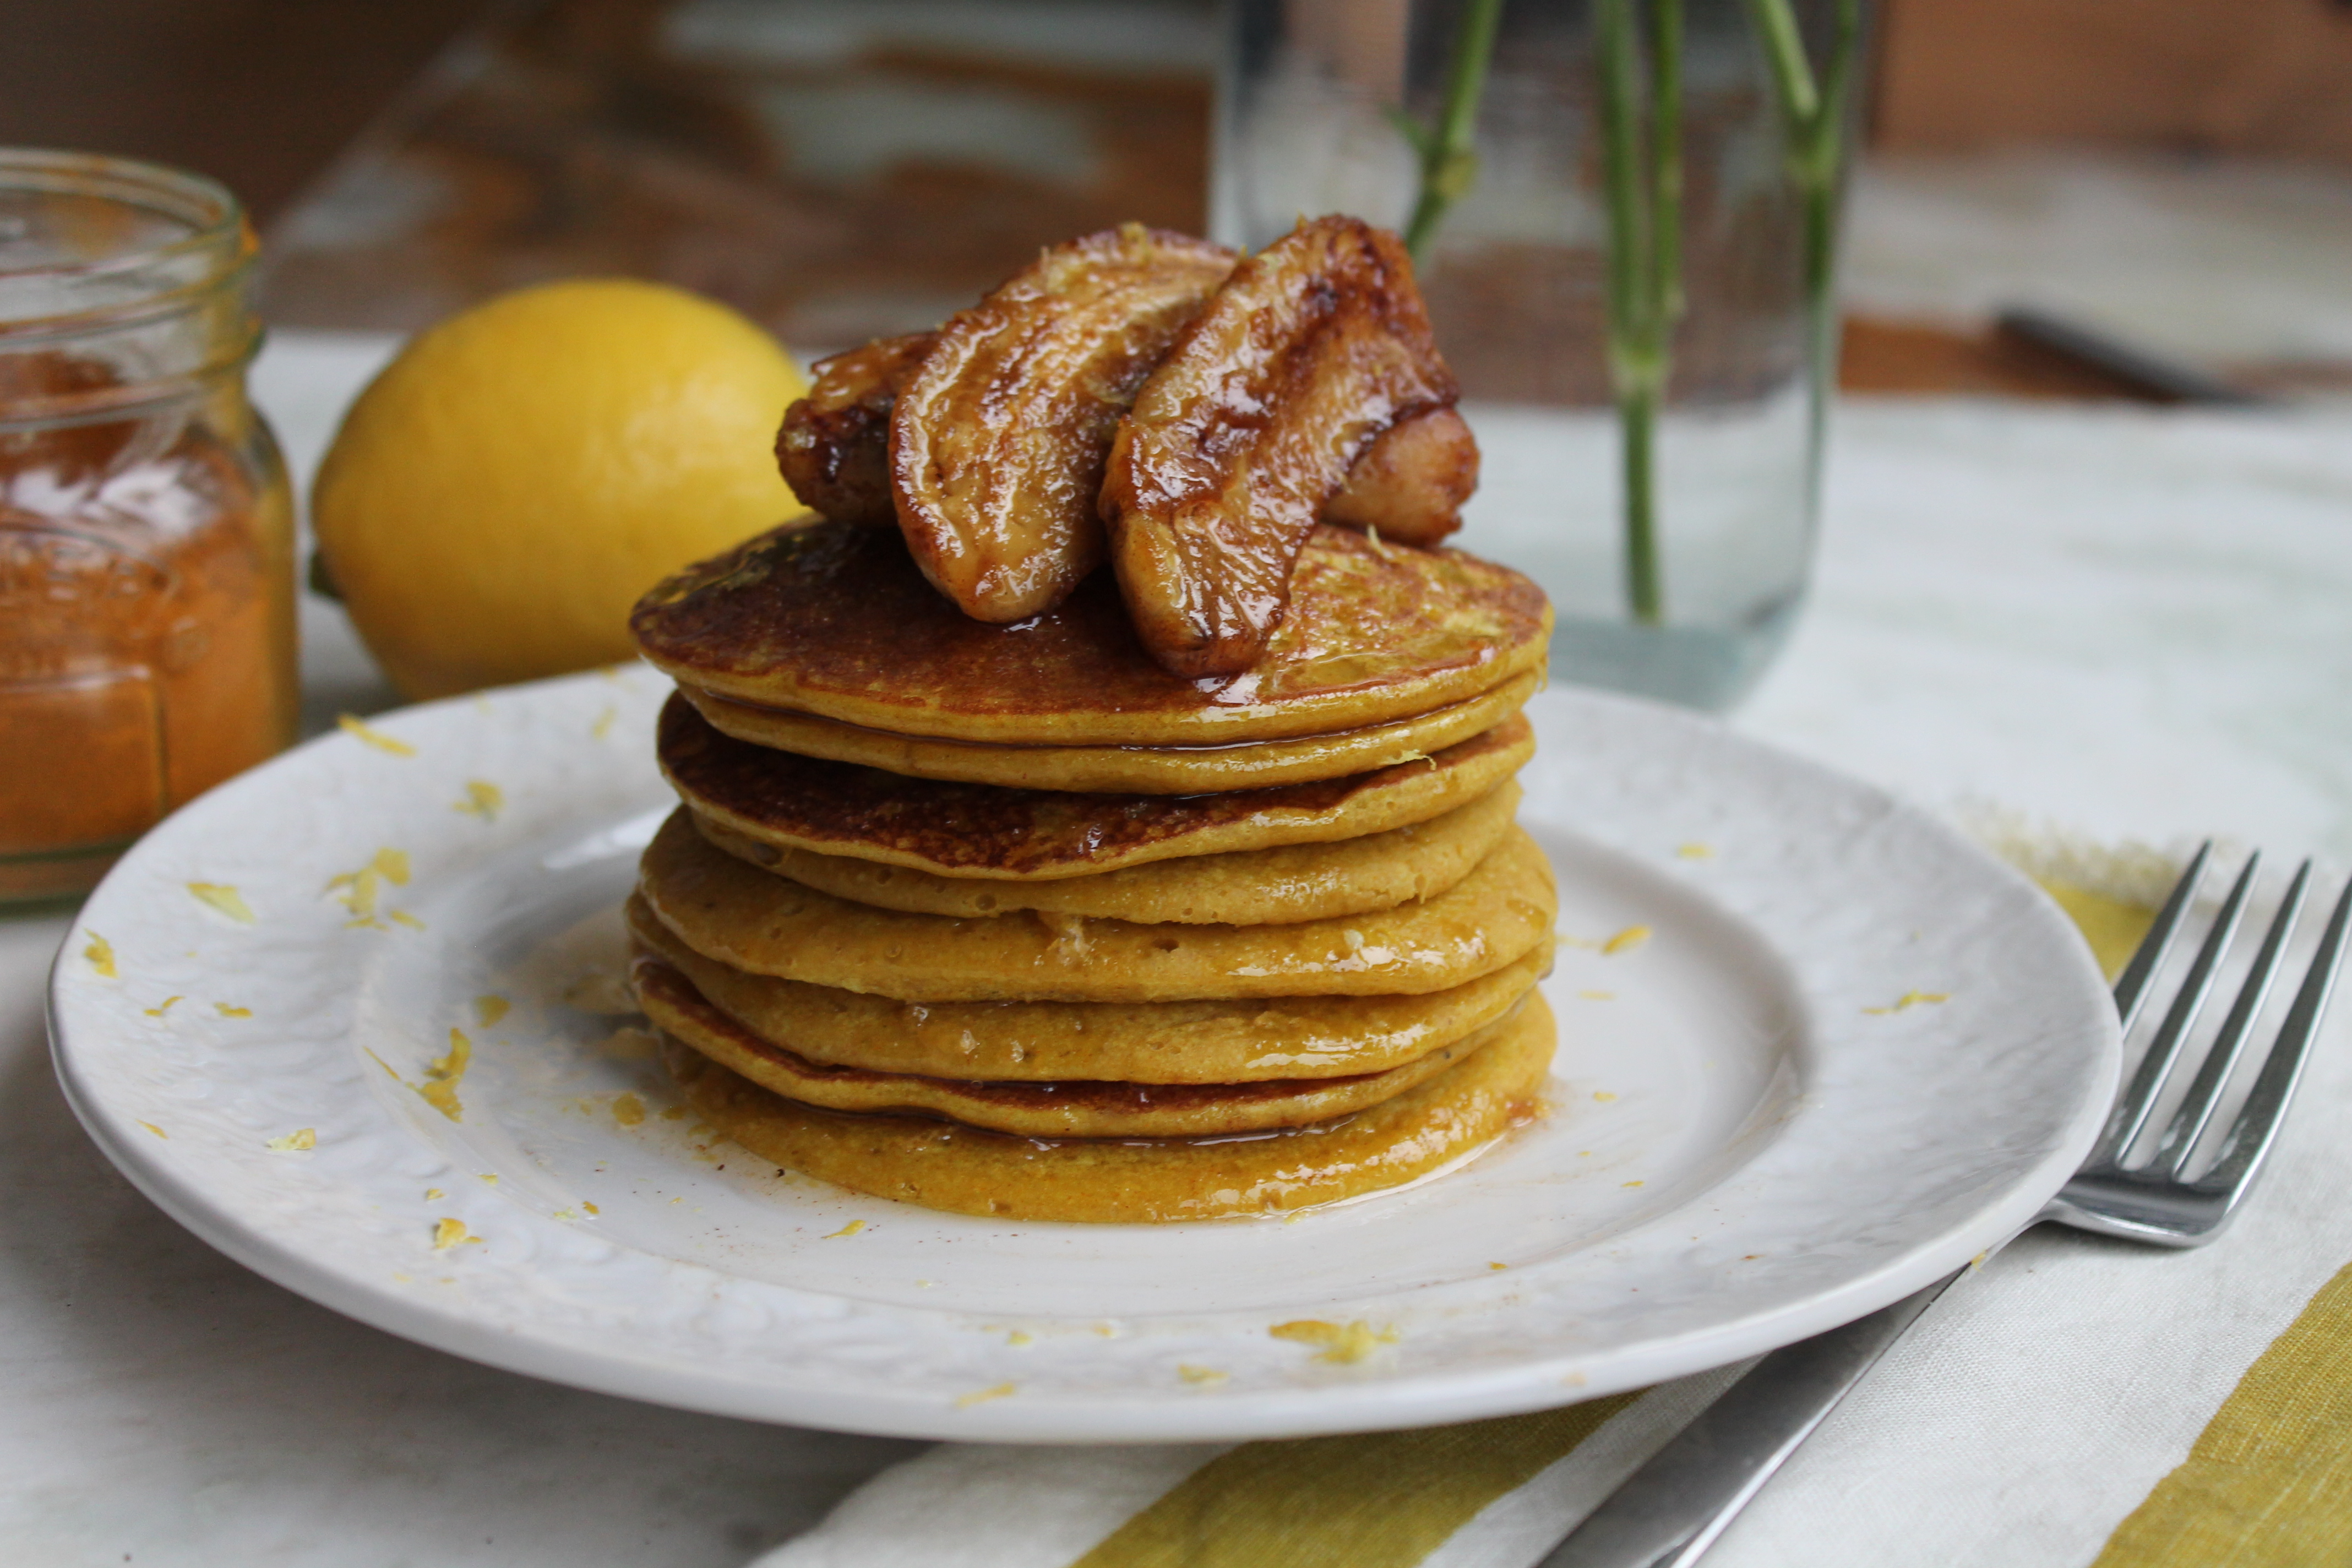 Lemon and turmeric pancakes with caramelised bananas